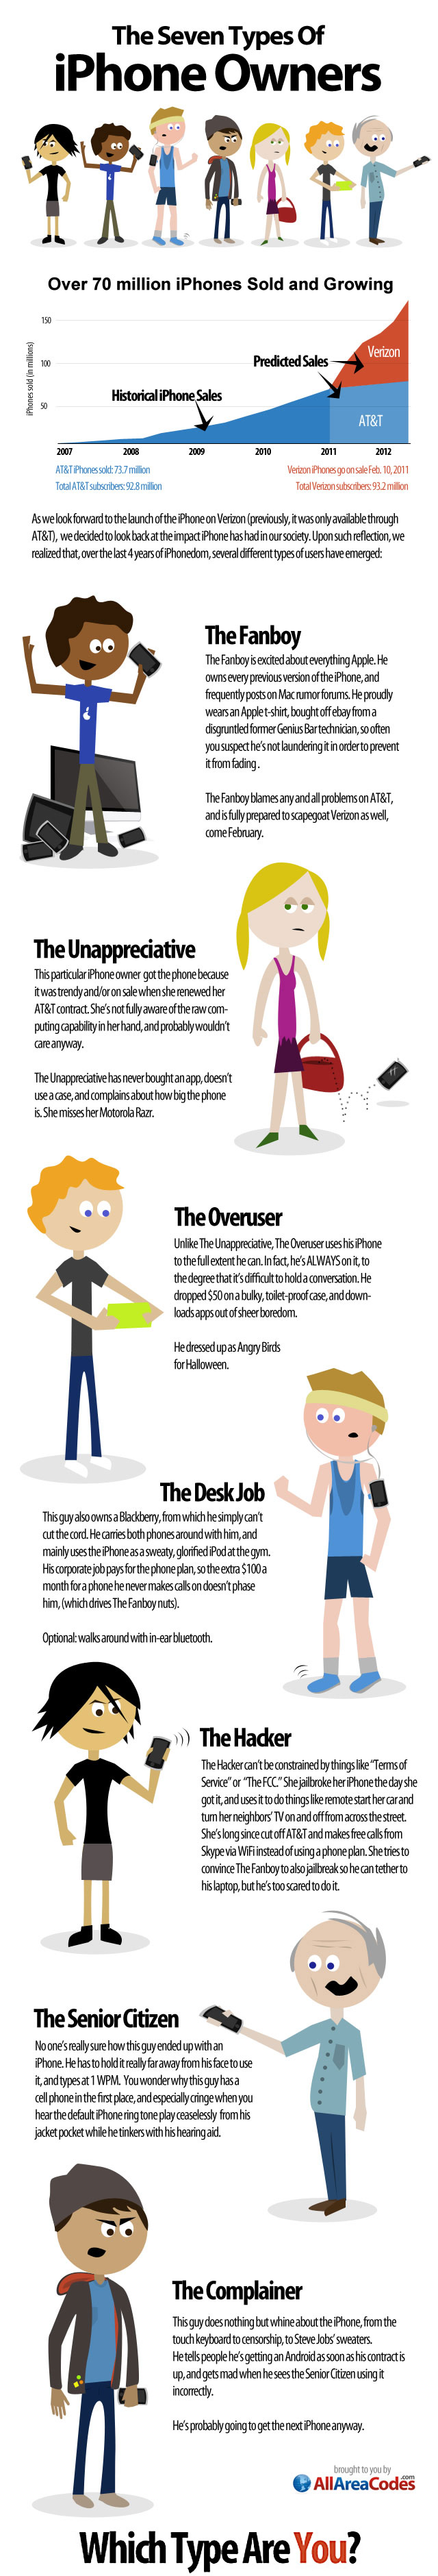 7-types-iphone-users